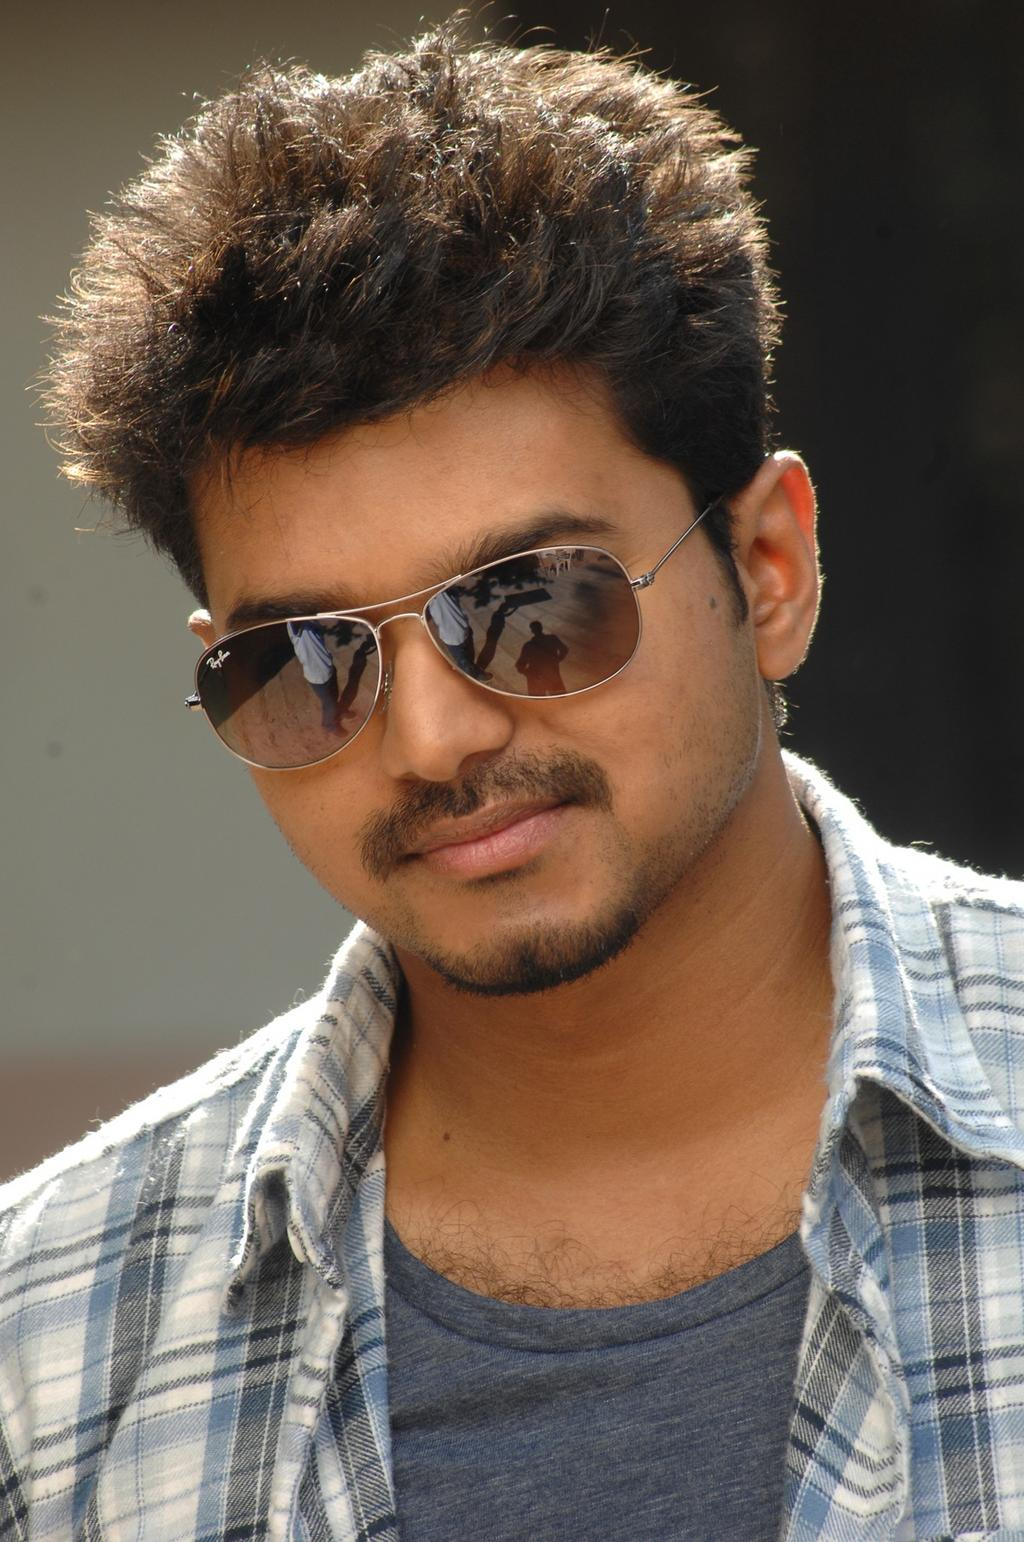 Actor+vijay+photo+released+by+a.r.murugados+via+twitter+looks+good+thuppaki